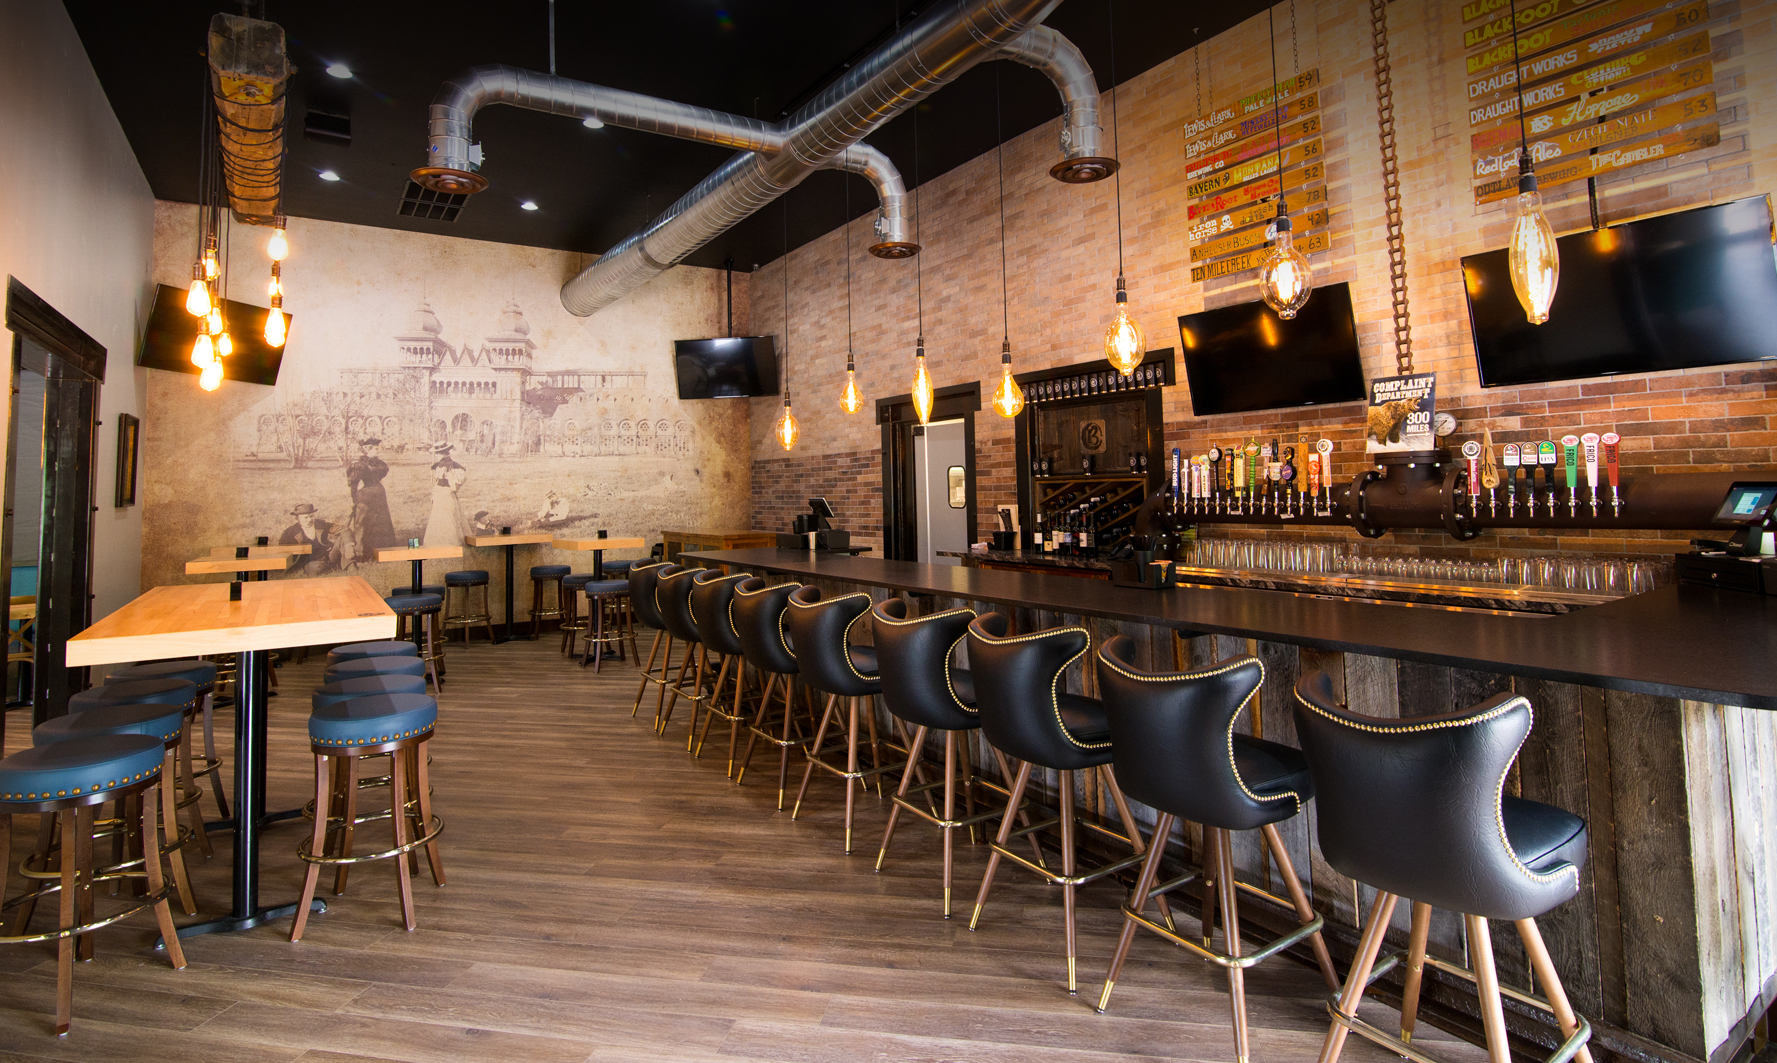 The Springs Taproom & Grill